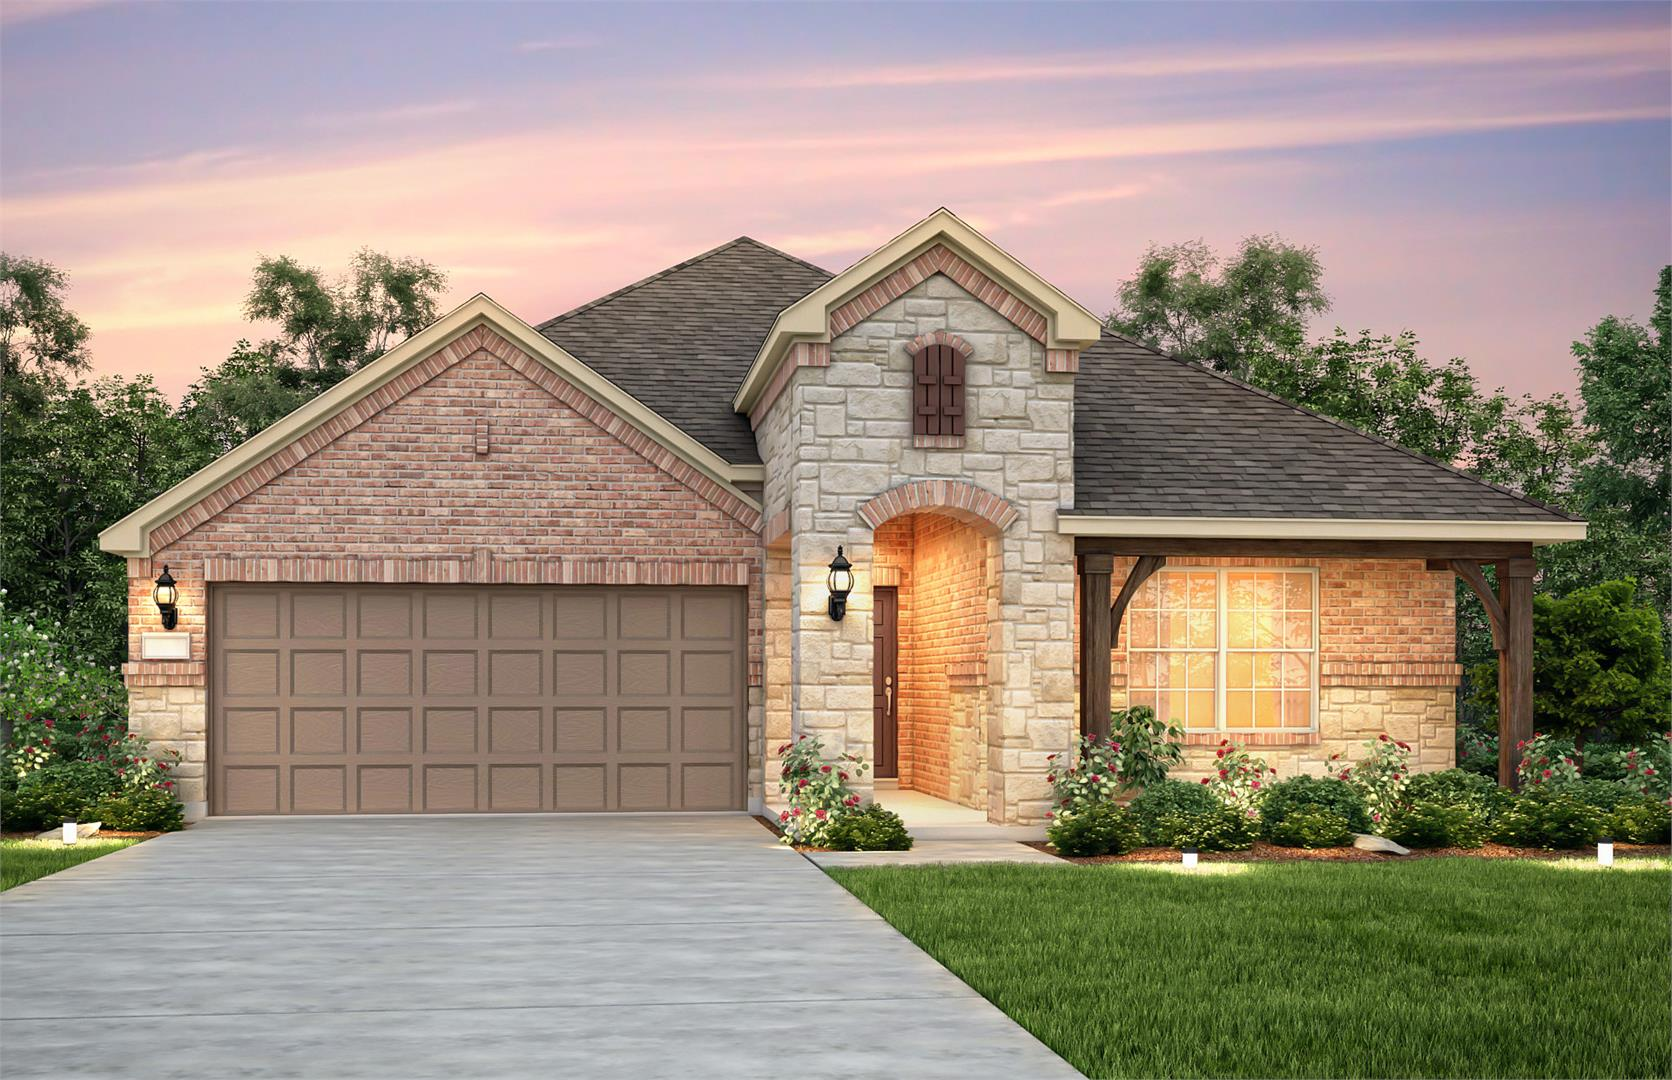 Garage Apartment Lakewood Dallas Lakewood Hills In The Colony Tx Prices Plans Availability